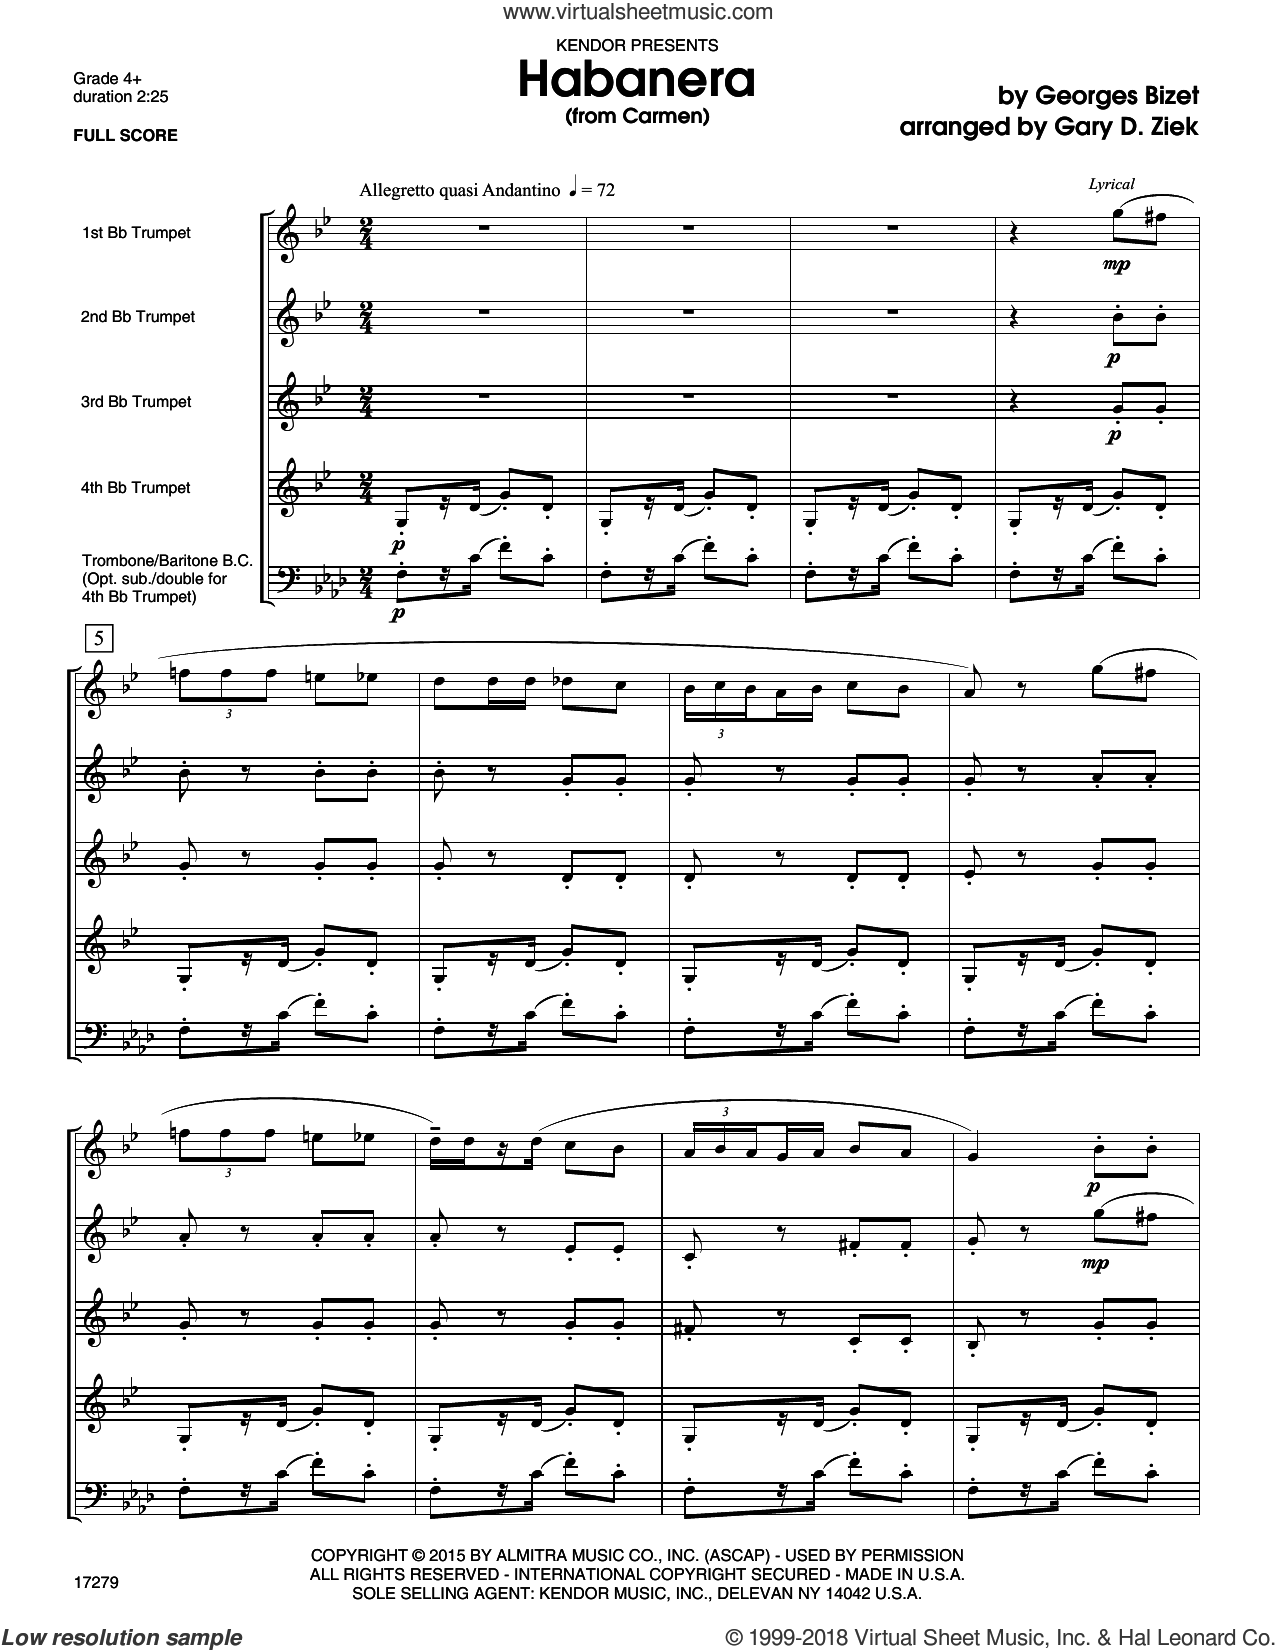 Habanera (from Carmen) (COMPLETE) sheet music for brass quintet by Georges Bizet and Gary Ziek, classical score, intermediate skill level